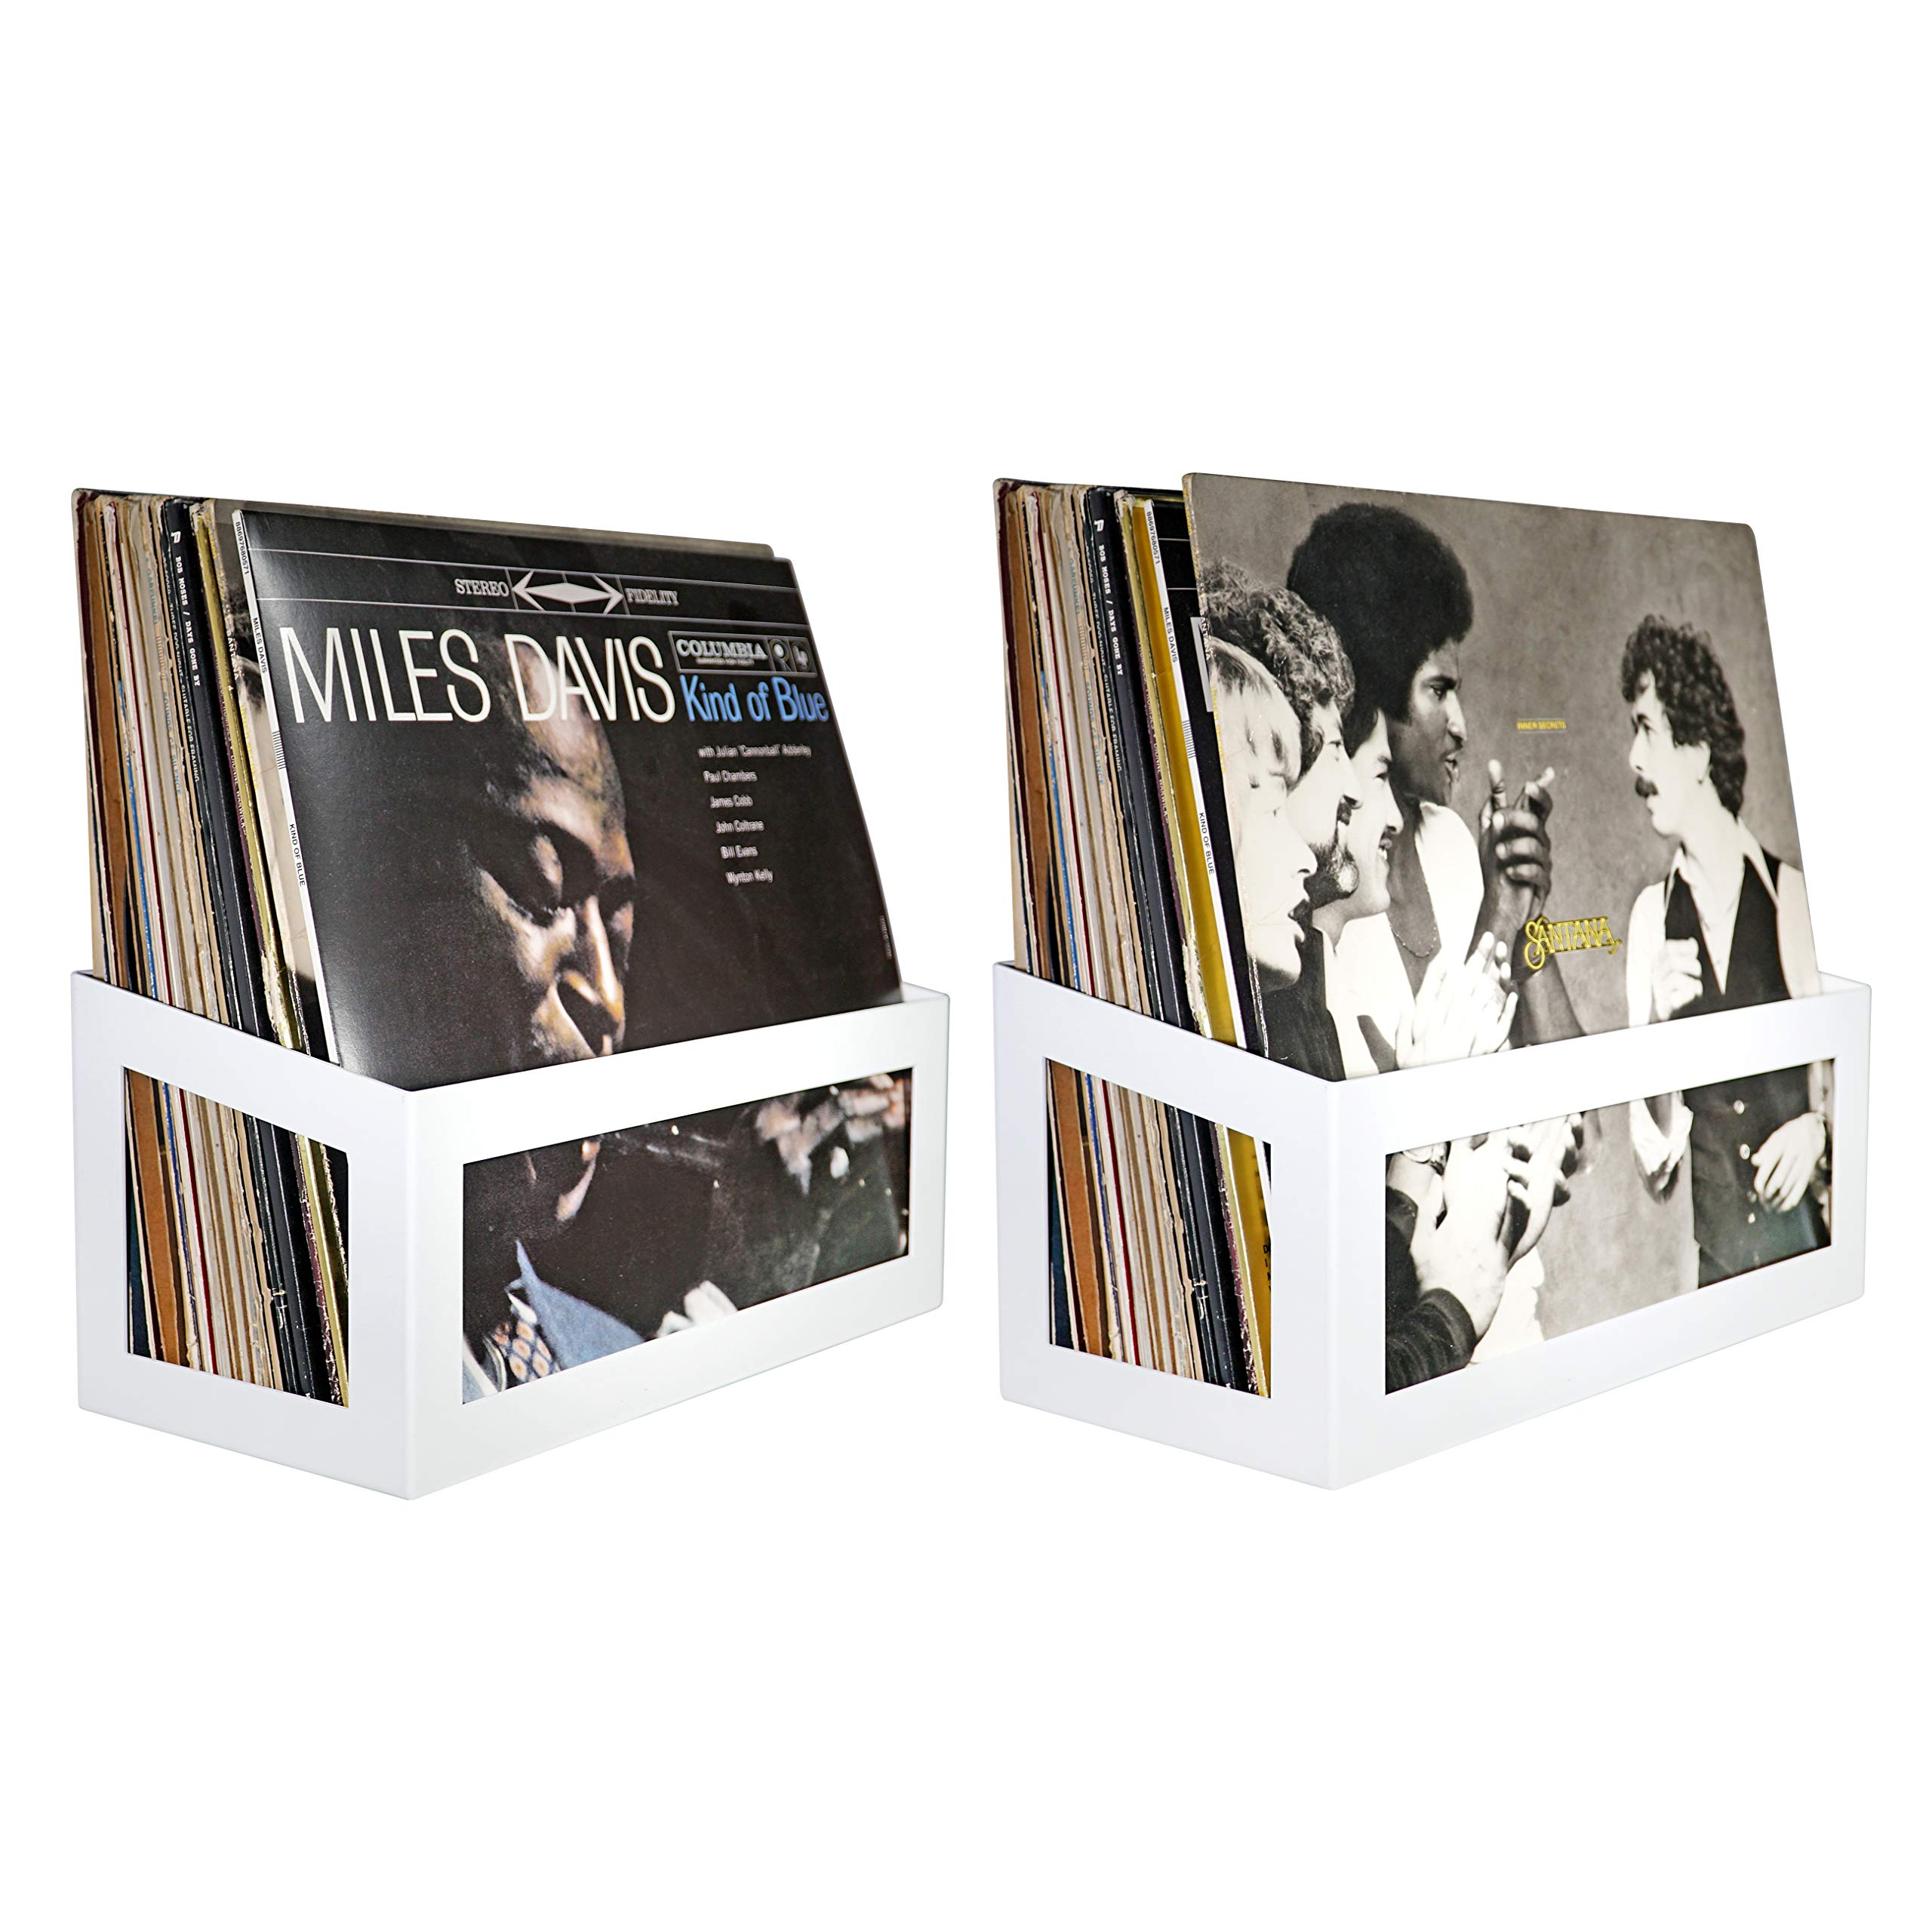 Hudson Hi-Fi Wall Mount Vinyl Record Storage 25-Album Display Holder | White Pearl | Two Pack by Hudson Hi-Fi